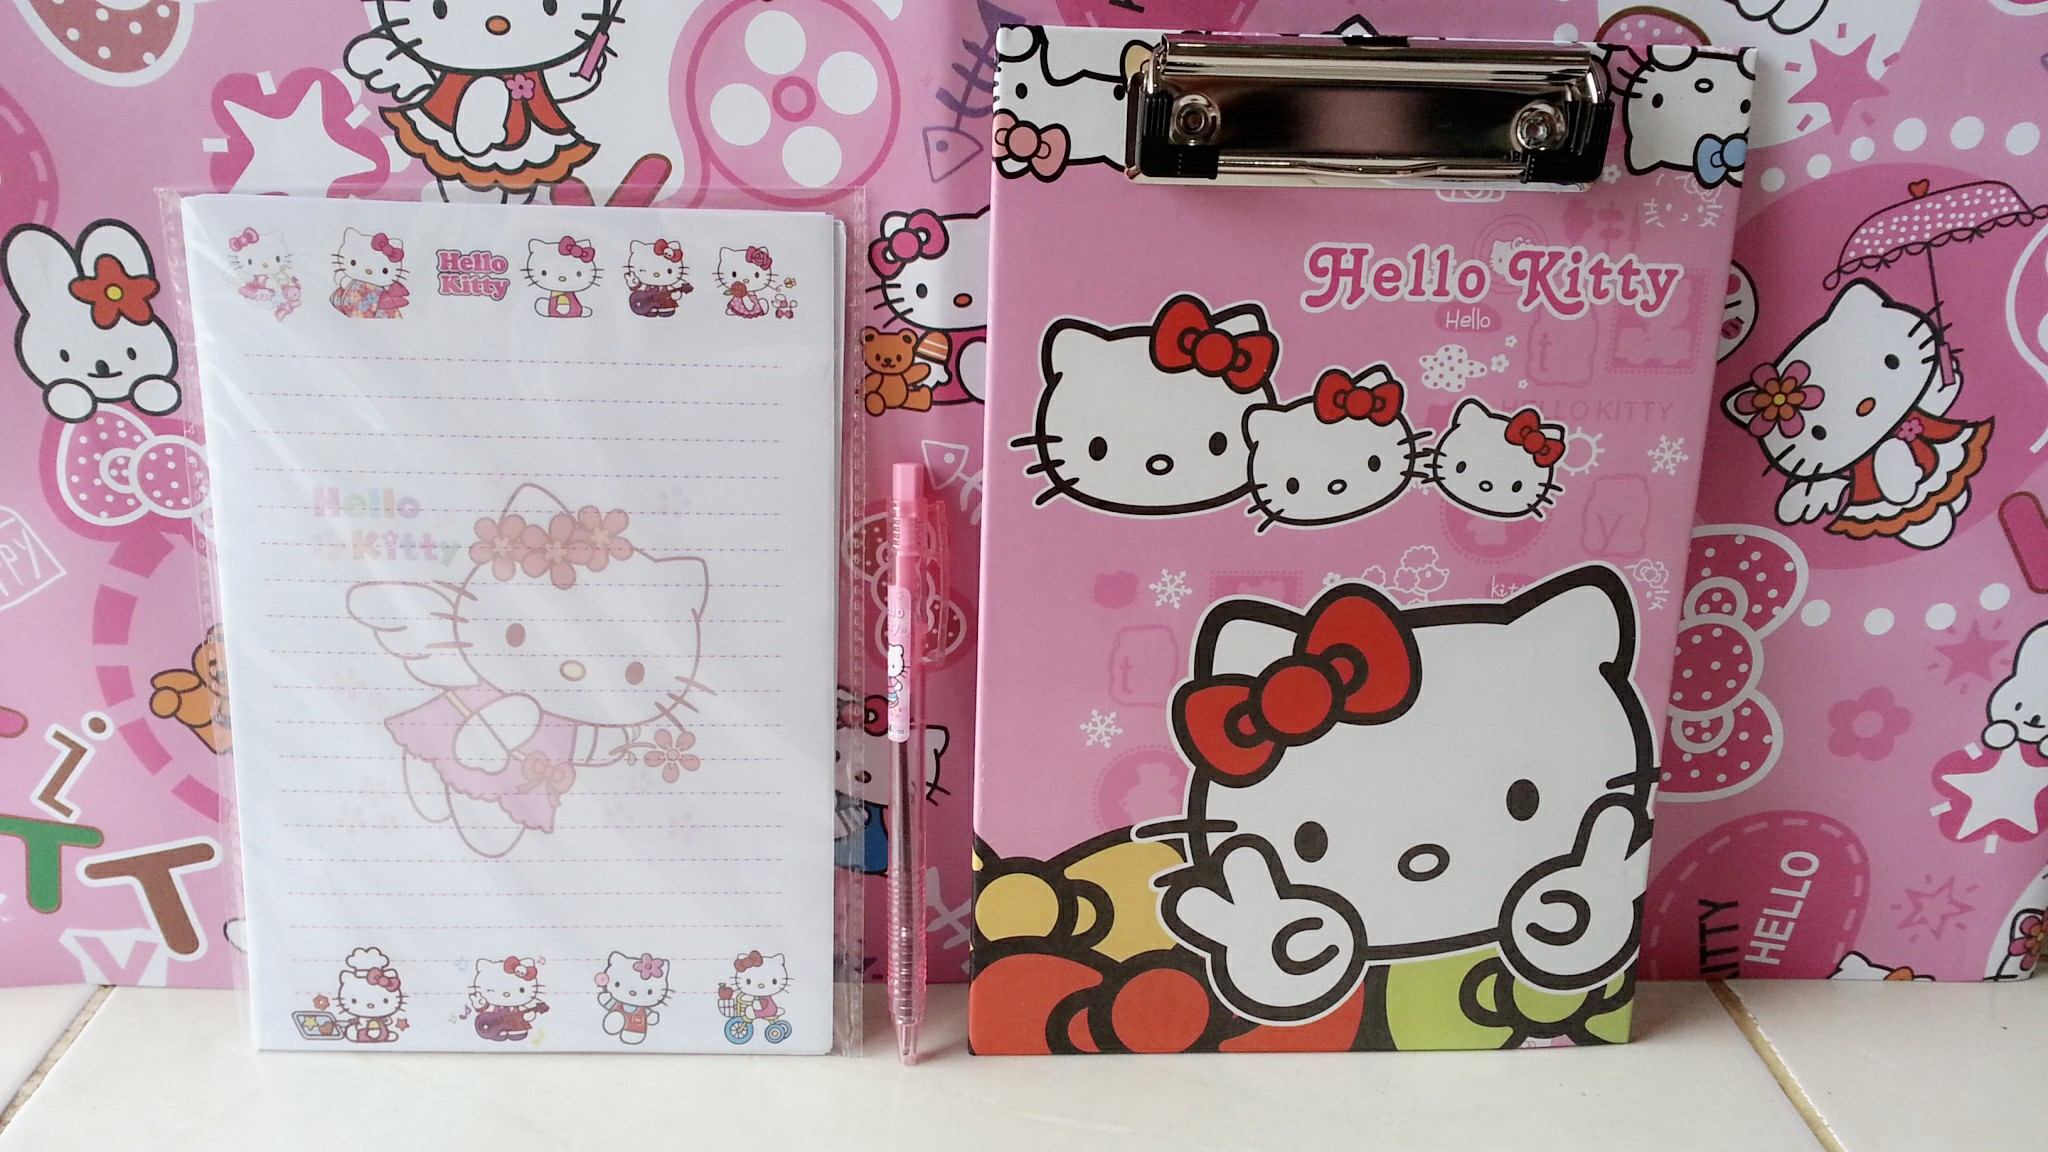 Serba Hello Kitty Reseller Hello Kitty Toko Hello Kitty Online Jual Aksesoris